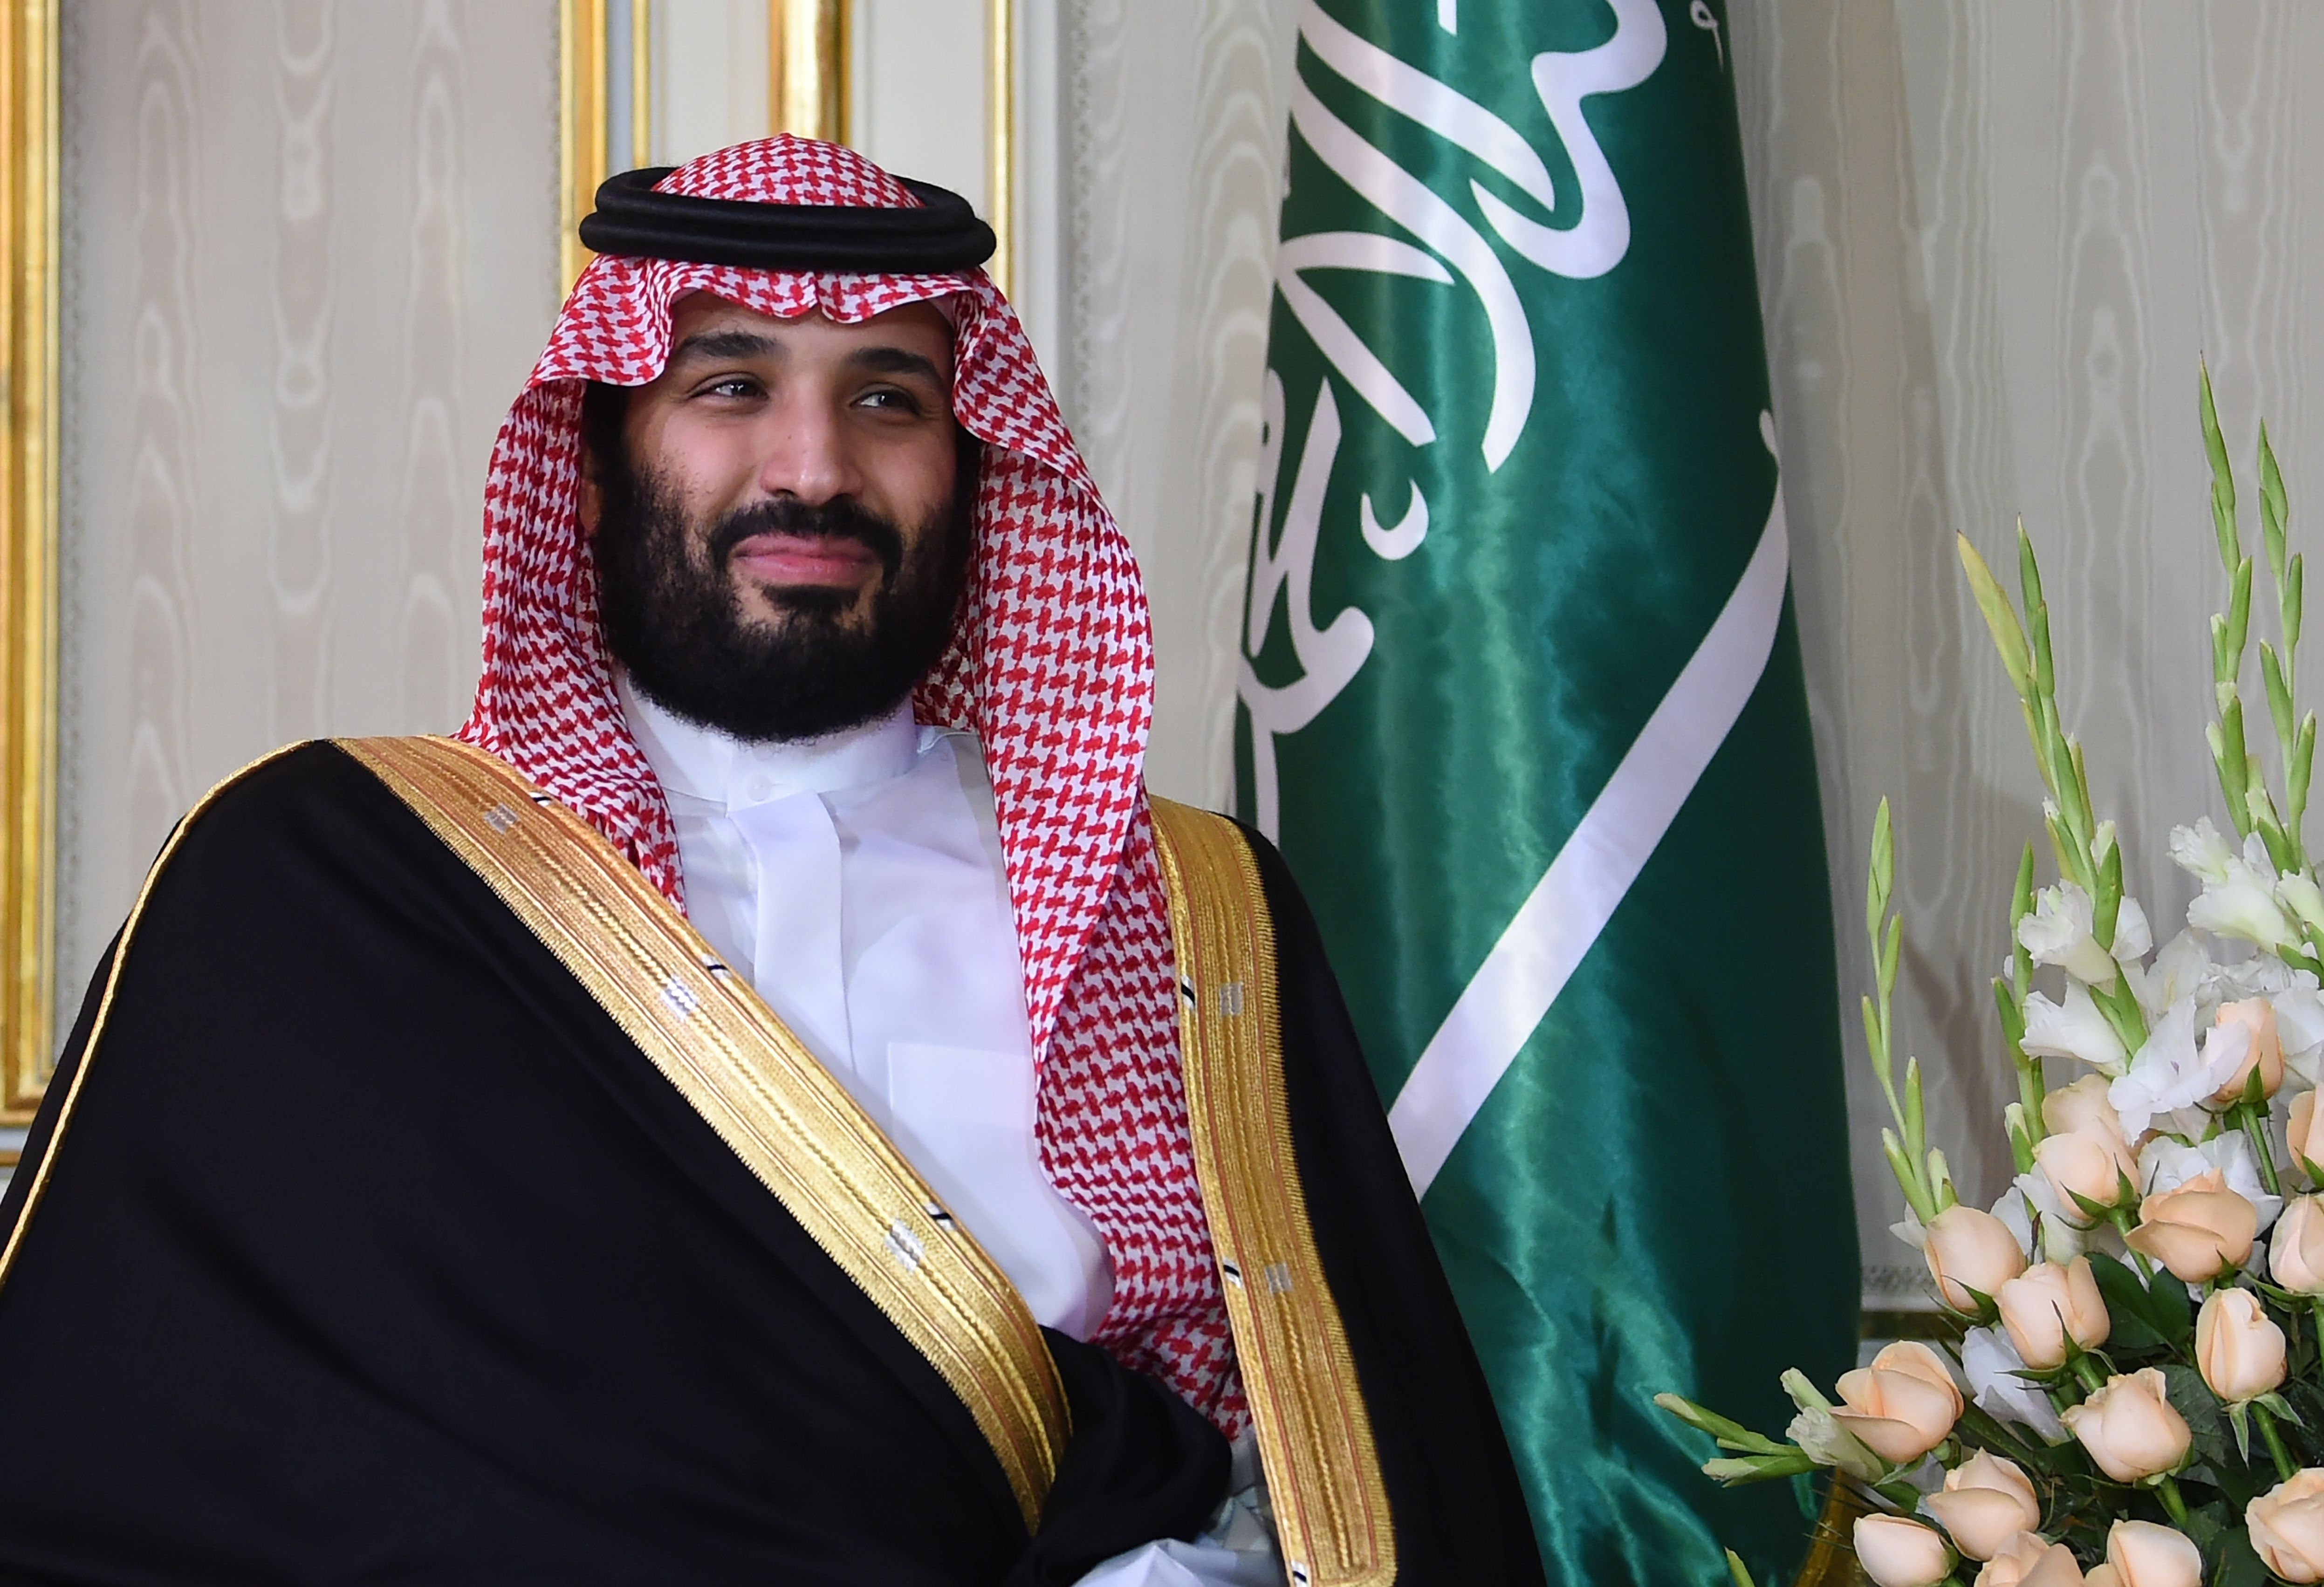 American citizen reportedly detained, tortured by Saudi Arabia - Axios